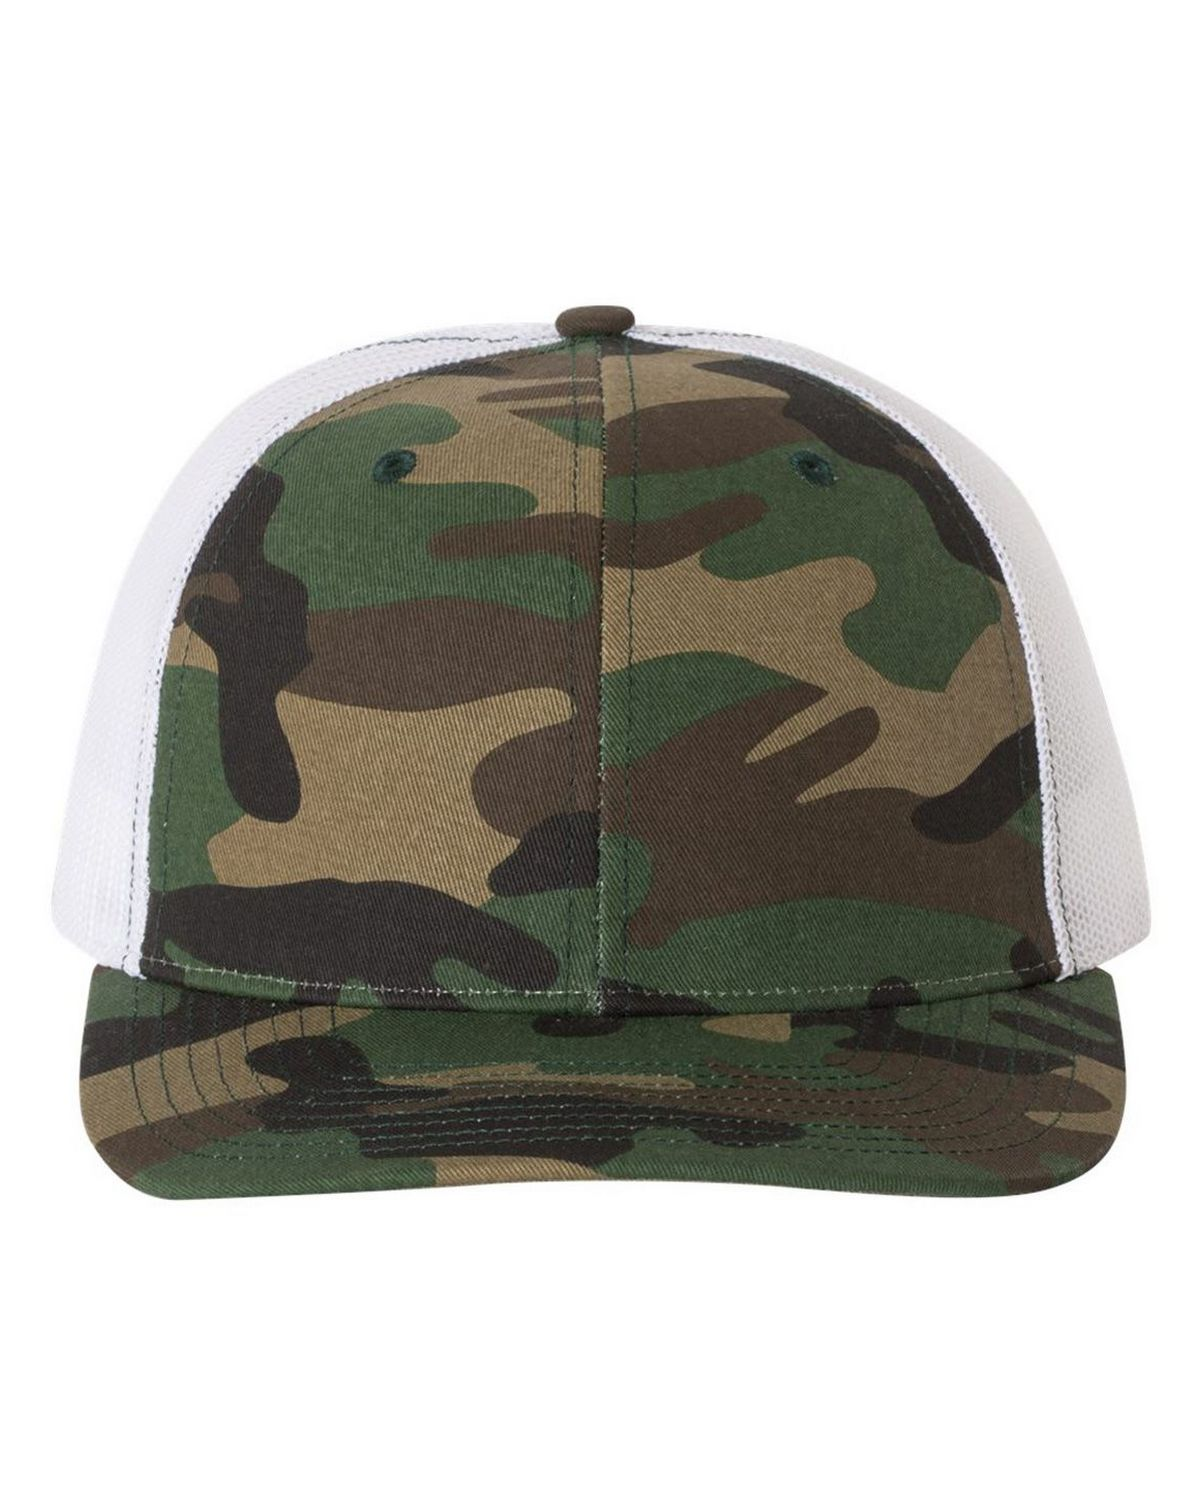 d73f5b3f89d8f Richardson 112P Patterned Snapback Trucker Cap - Free Shipping Available